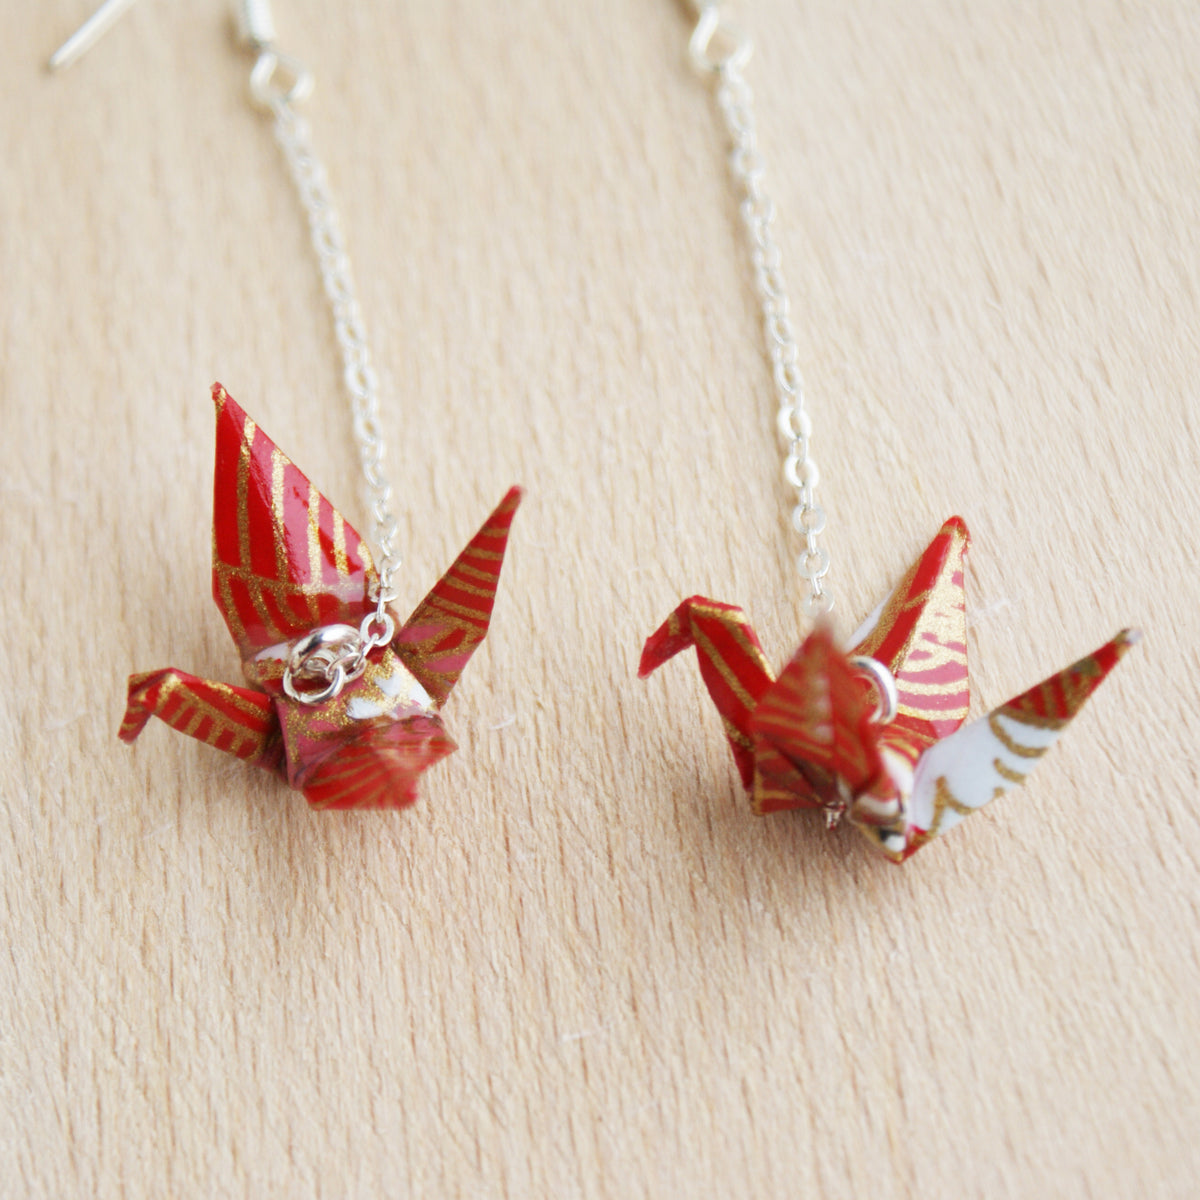 Japanese Origami Paper Crane Sterling Silver Earrings - Red Gold